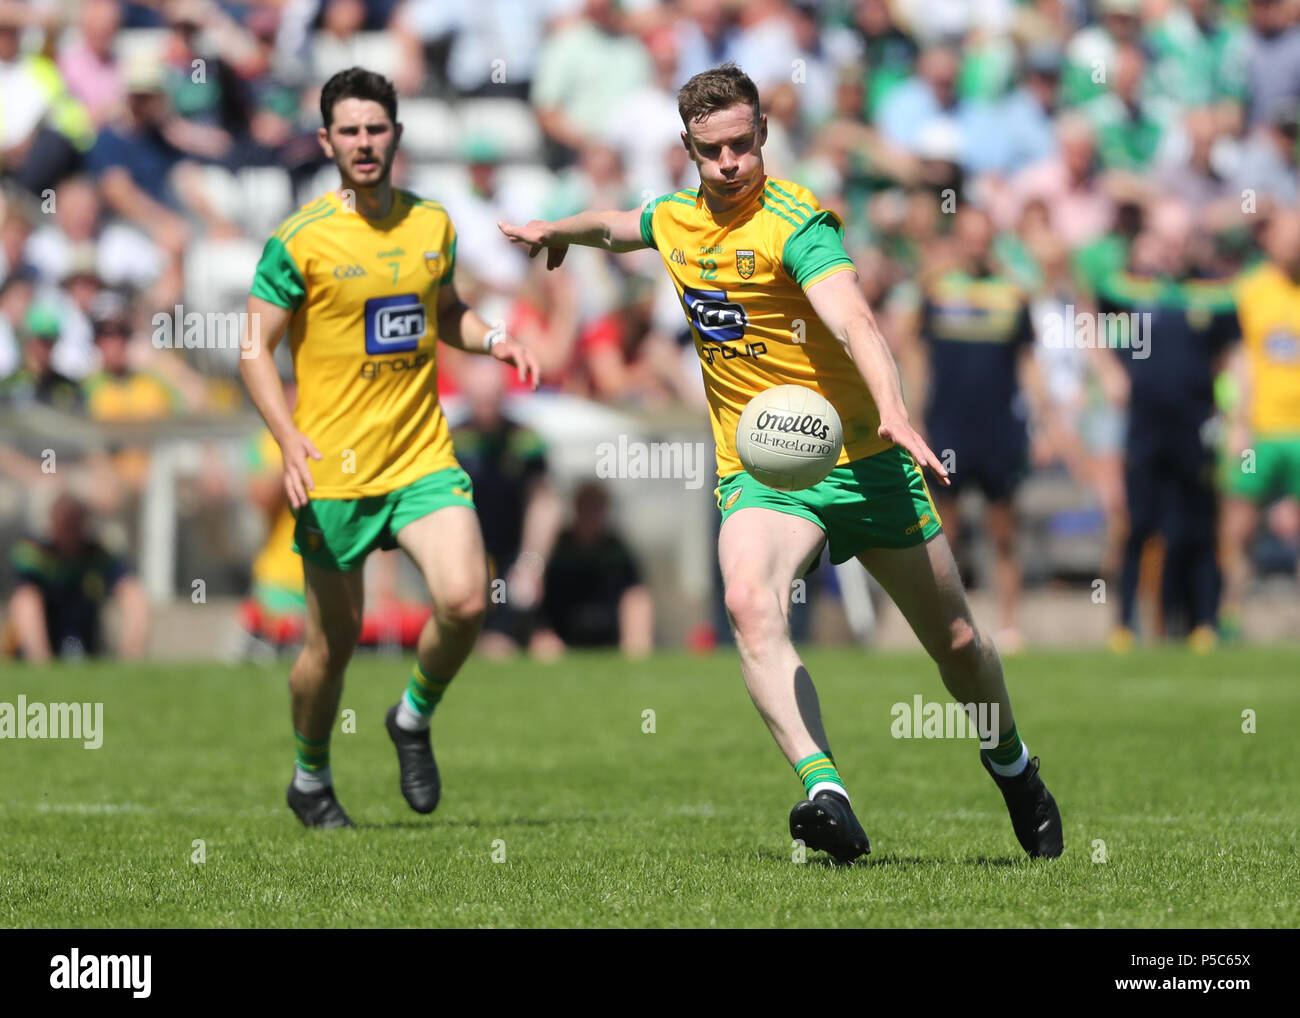 Donegal's Ciaran Thompson during the GAA Ulster Final in Clones, Co Monaghan, Ireland. - Stock Image